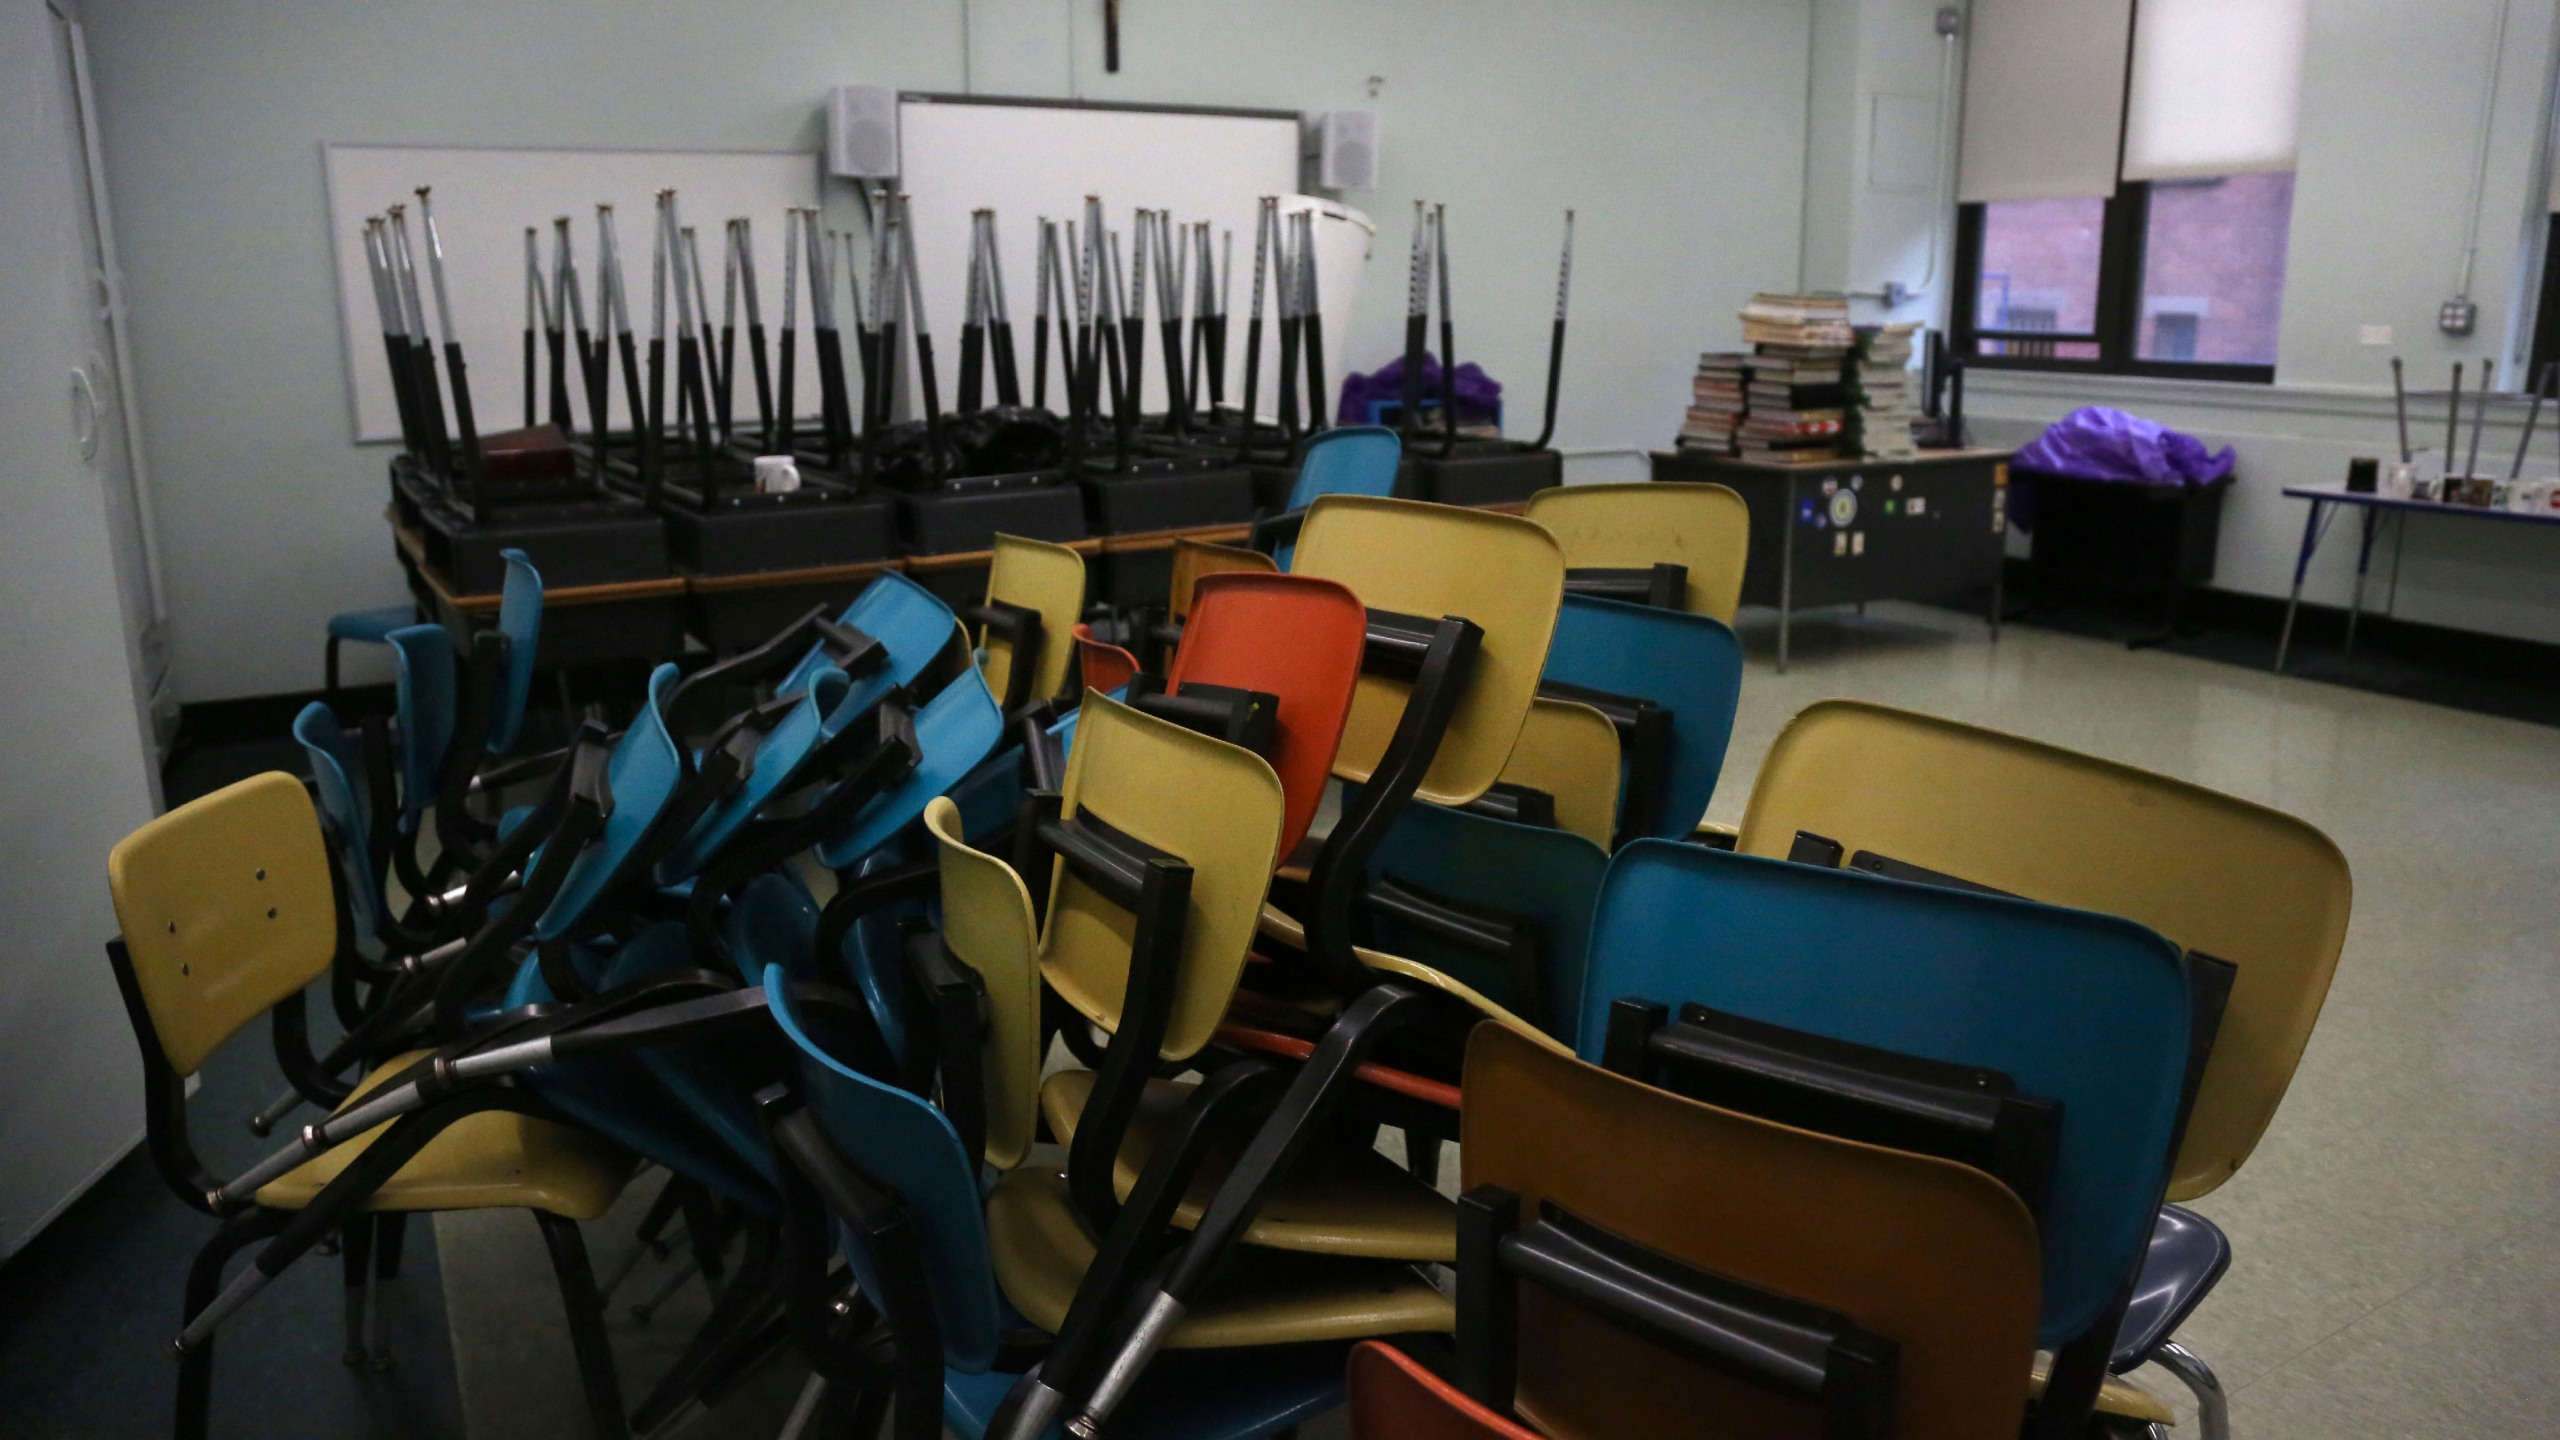 Desks are stacked in an empty classroom after the permanent closure of Queen of the Rosary Catholic Academy in Brooklyn borough of New York, Thursday, Aug. 6, 2020. (AP Photo/Jessie Wardarski)